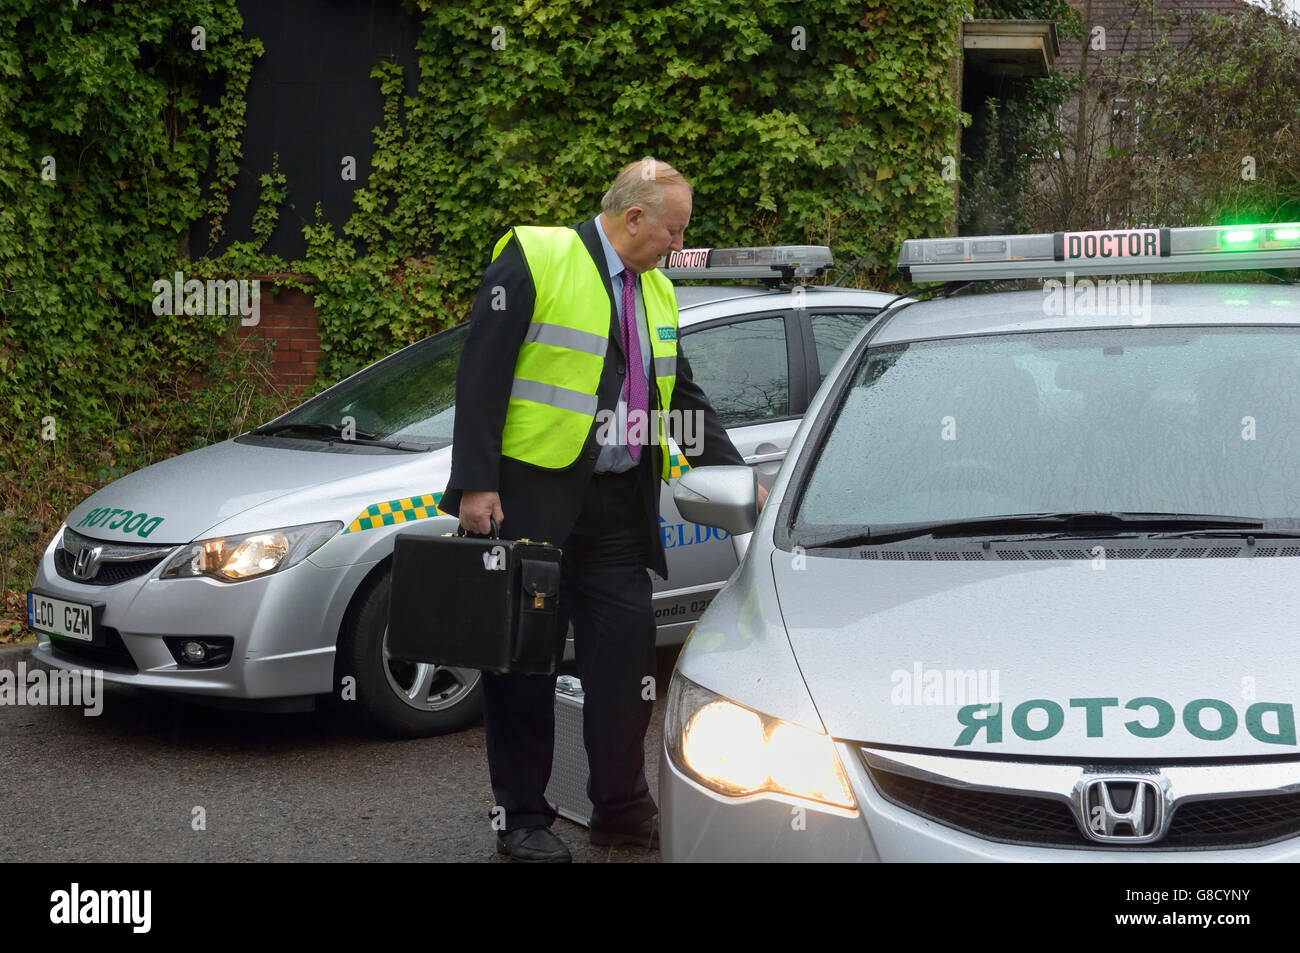 Doctor on call with car. England. UK. Europe - Stock Image